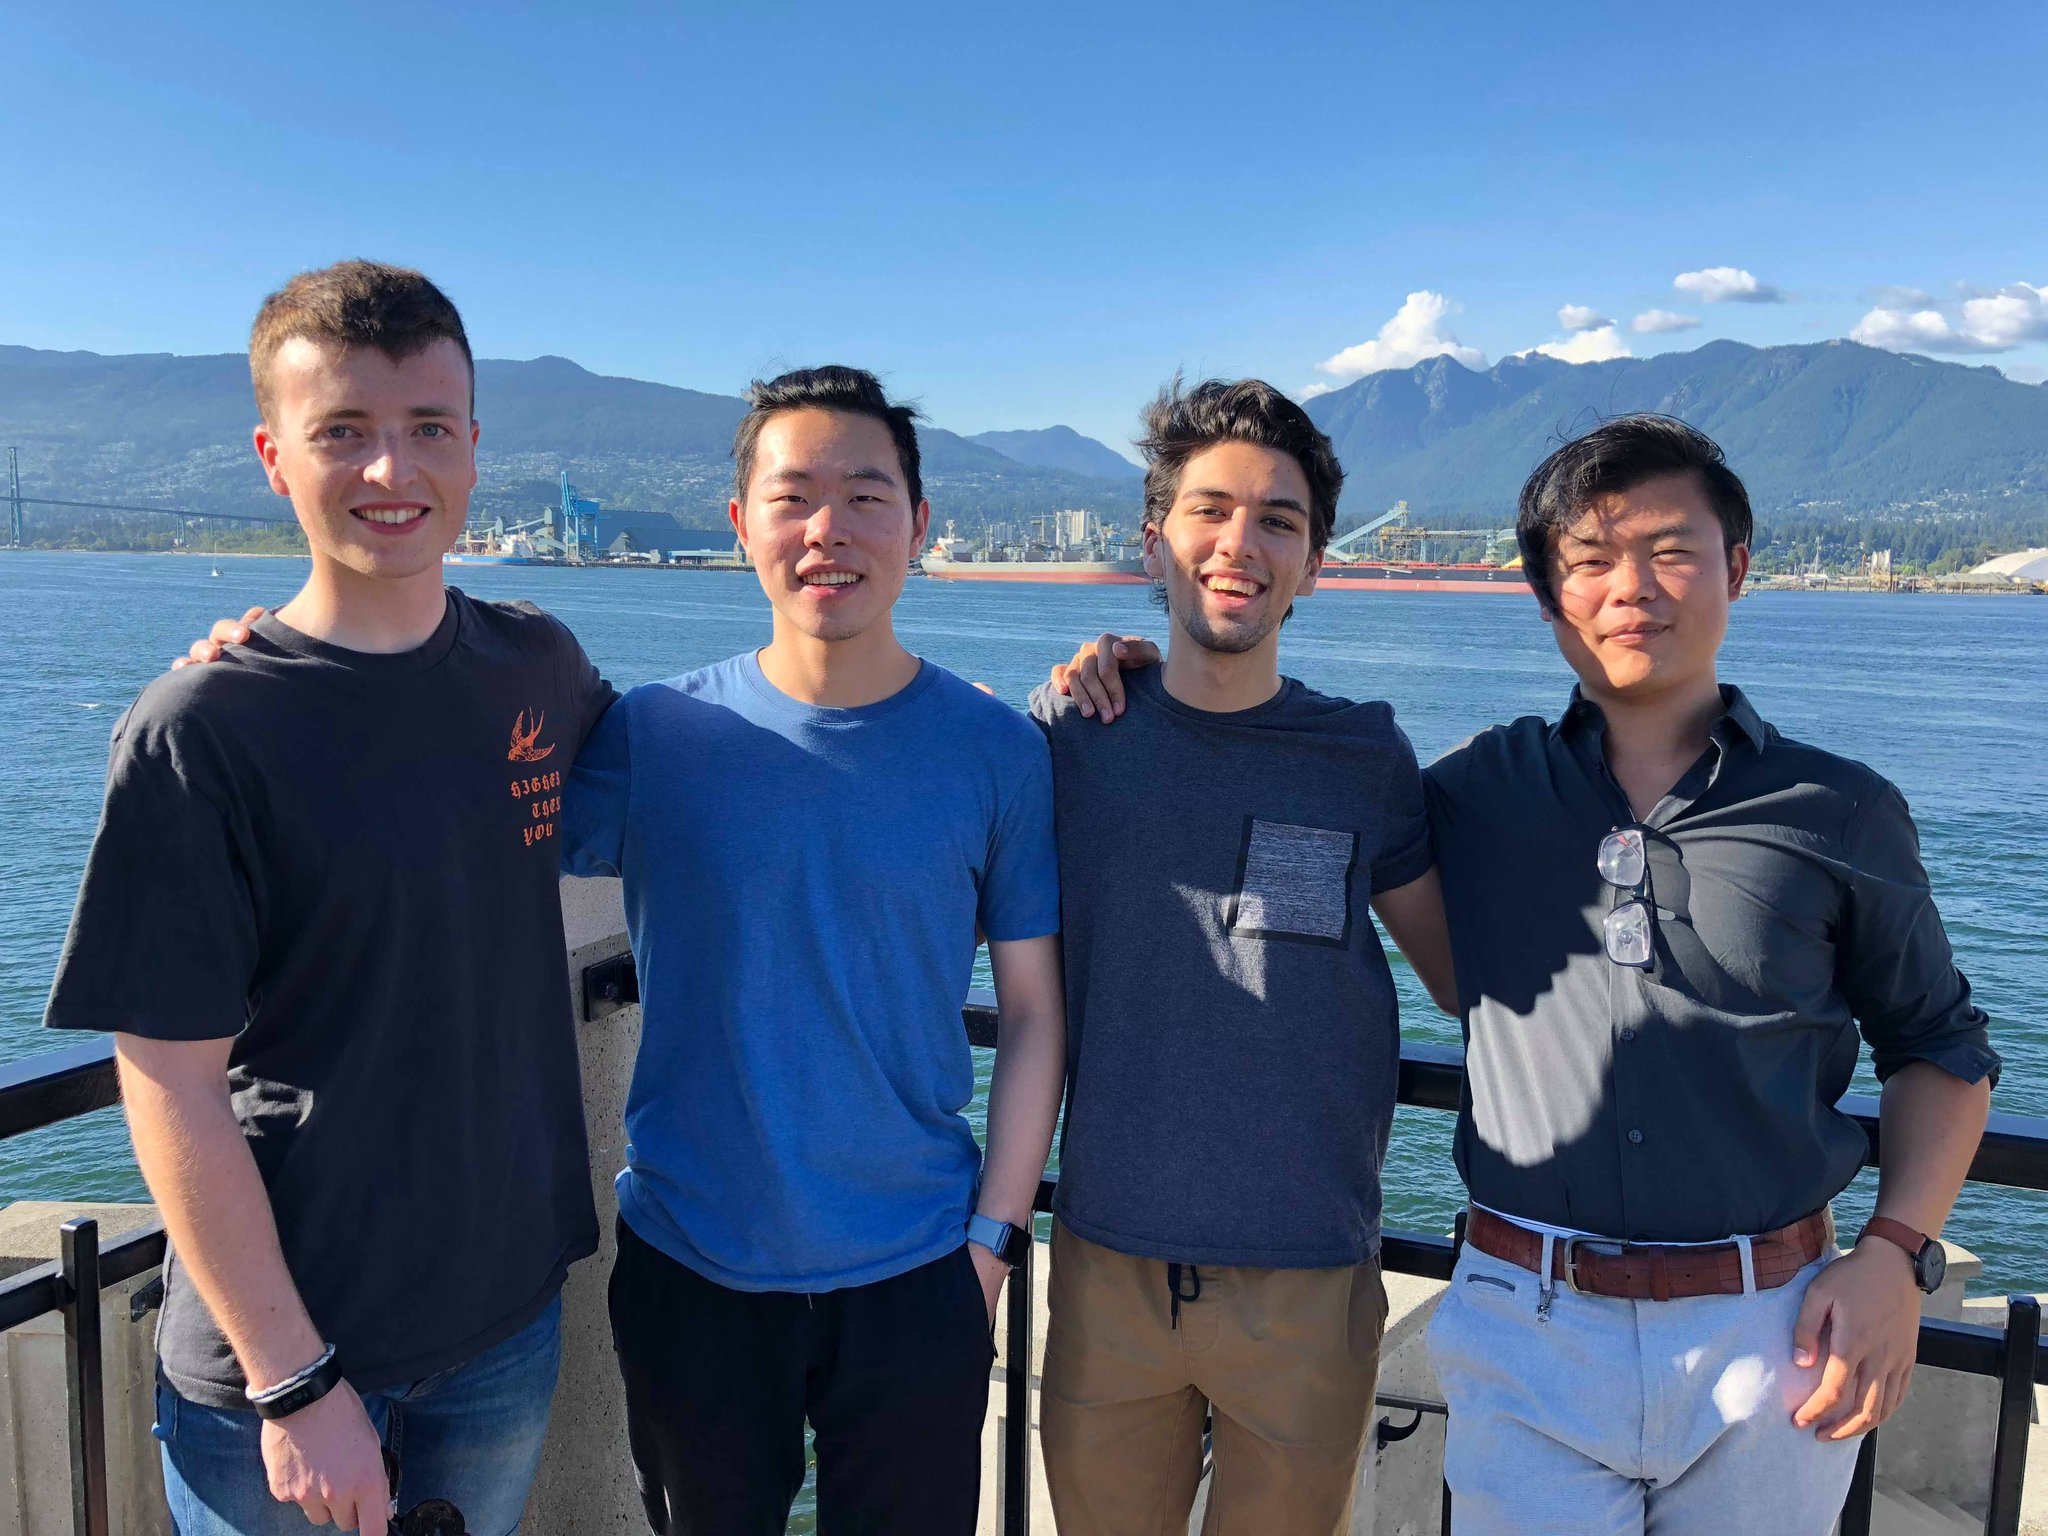 Summer 2018: Peter, Youchang, Usman, and Weiying